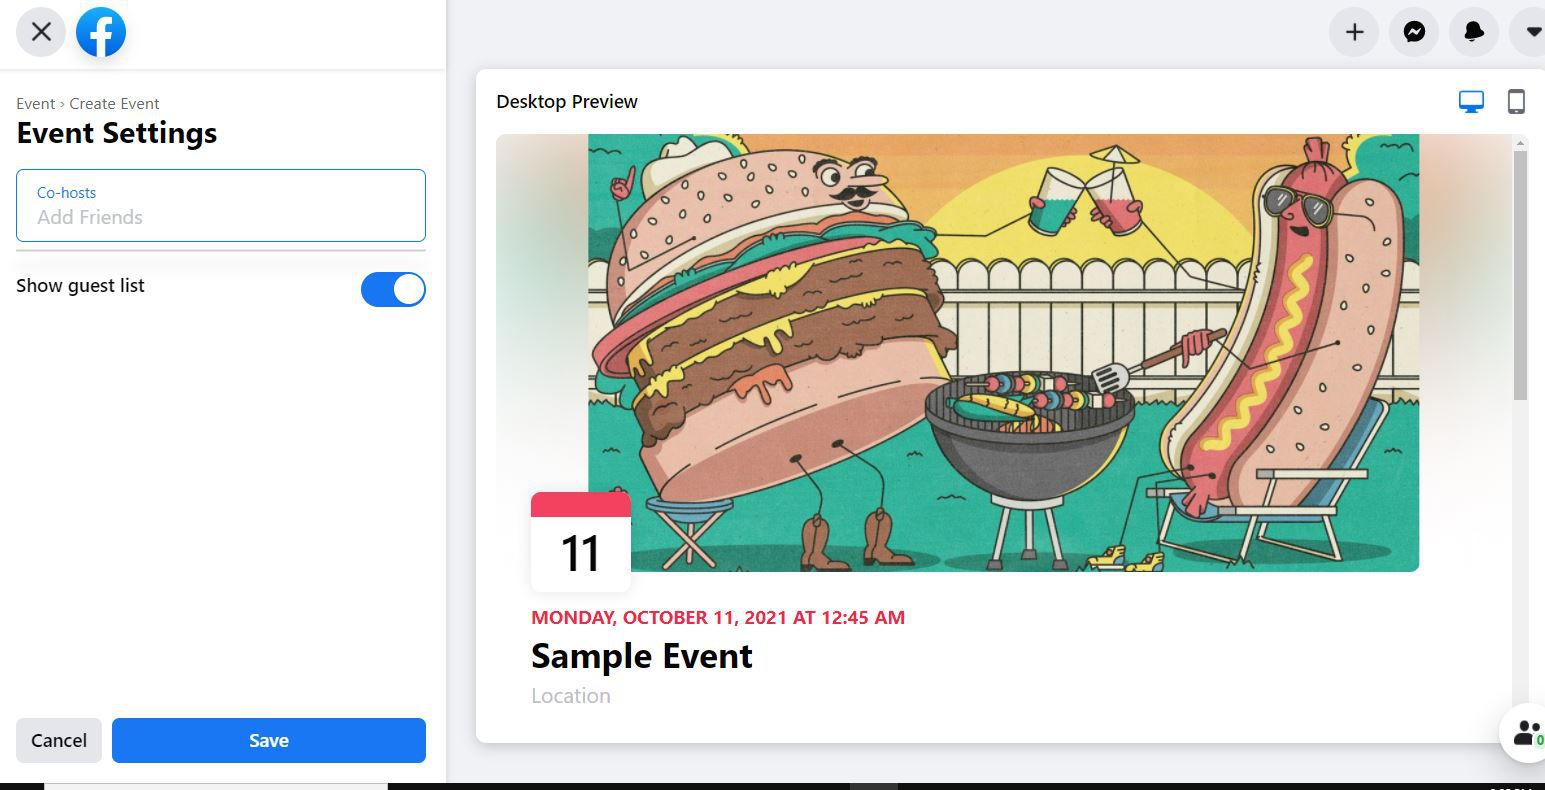 Event Settings options in Facebook Event setup